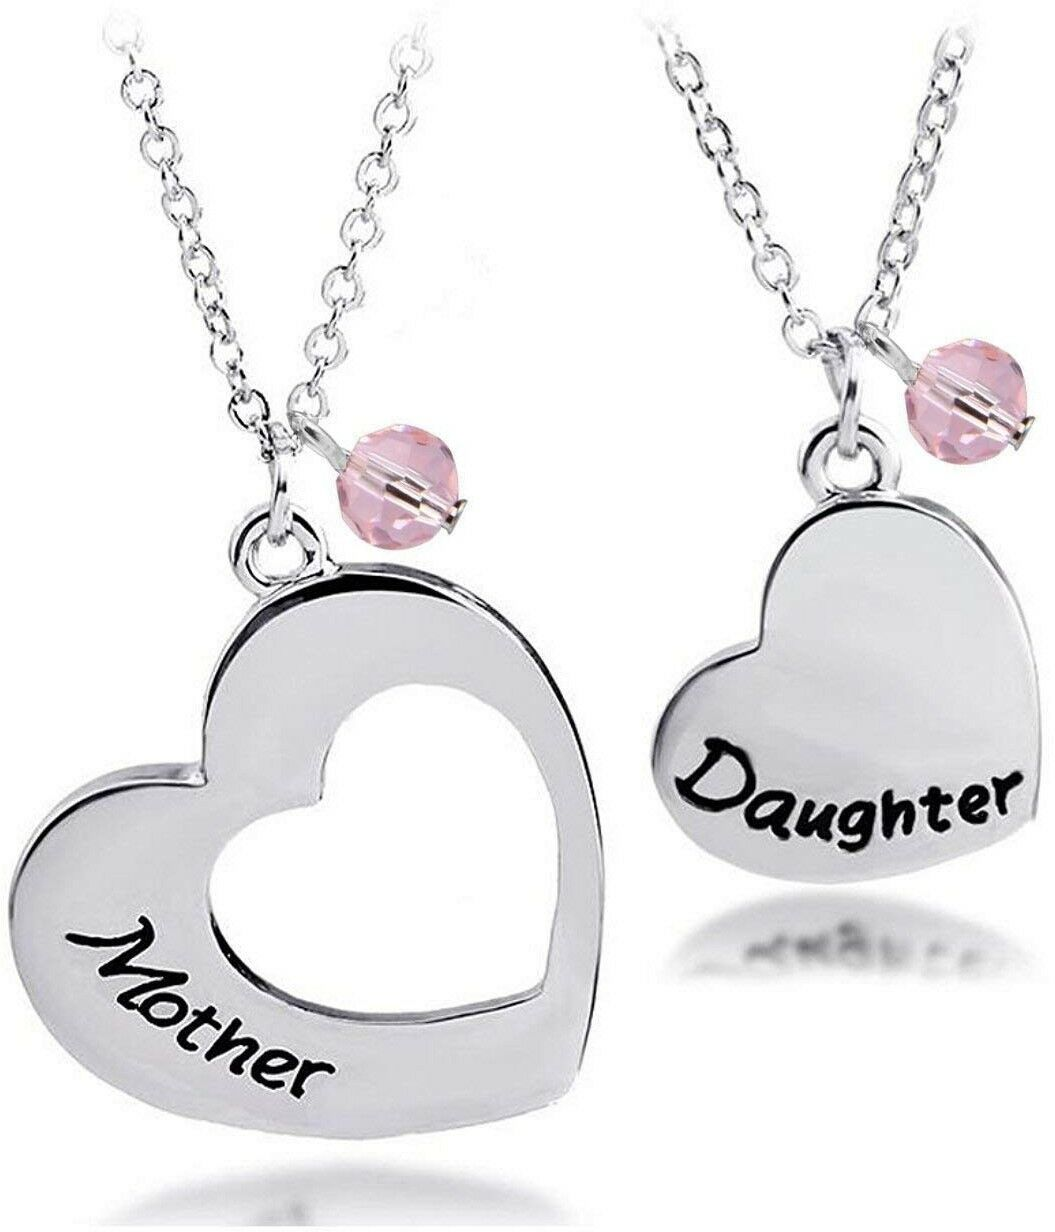 Primary image for BNQL Mother Daughter Heart Necklace Set Mommy and Me Jewelry Gift (Mother set)